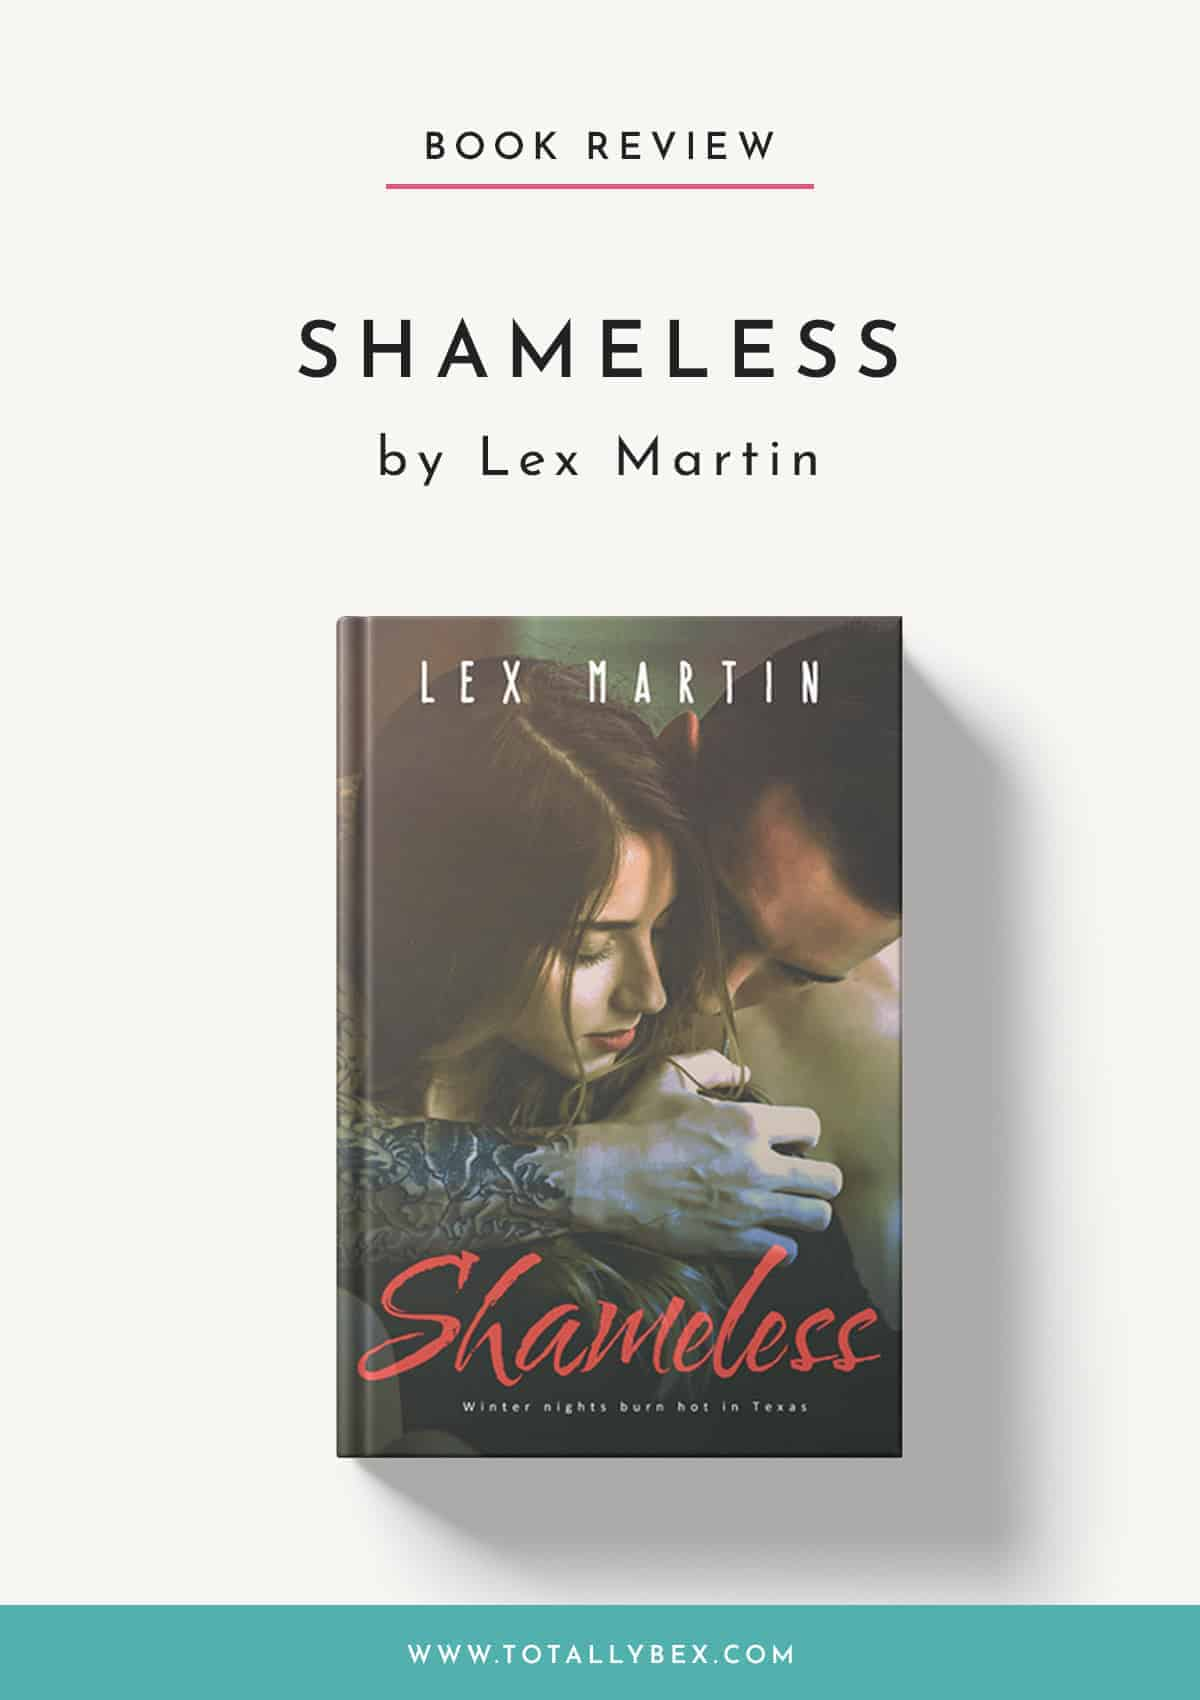 Shameless by Lex Martin-Book Review